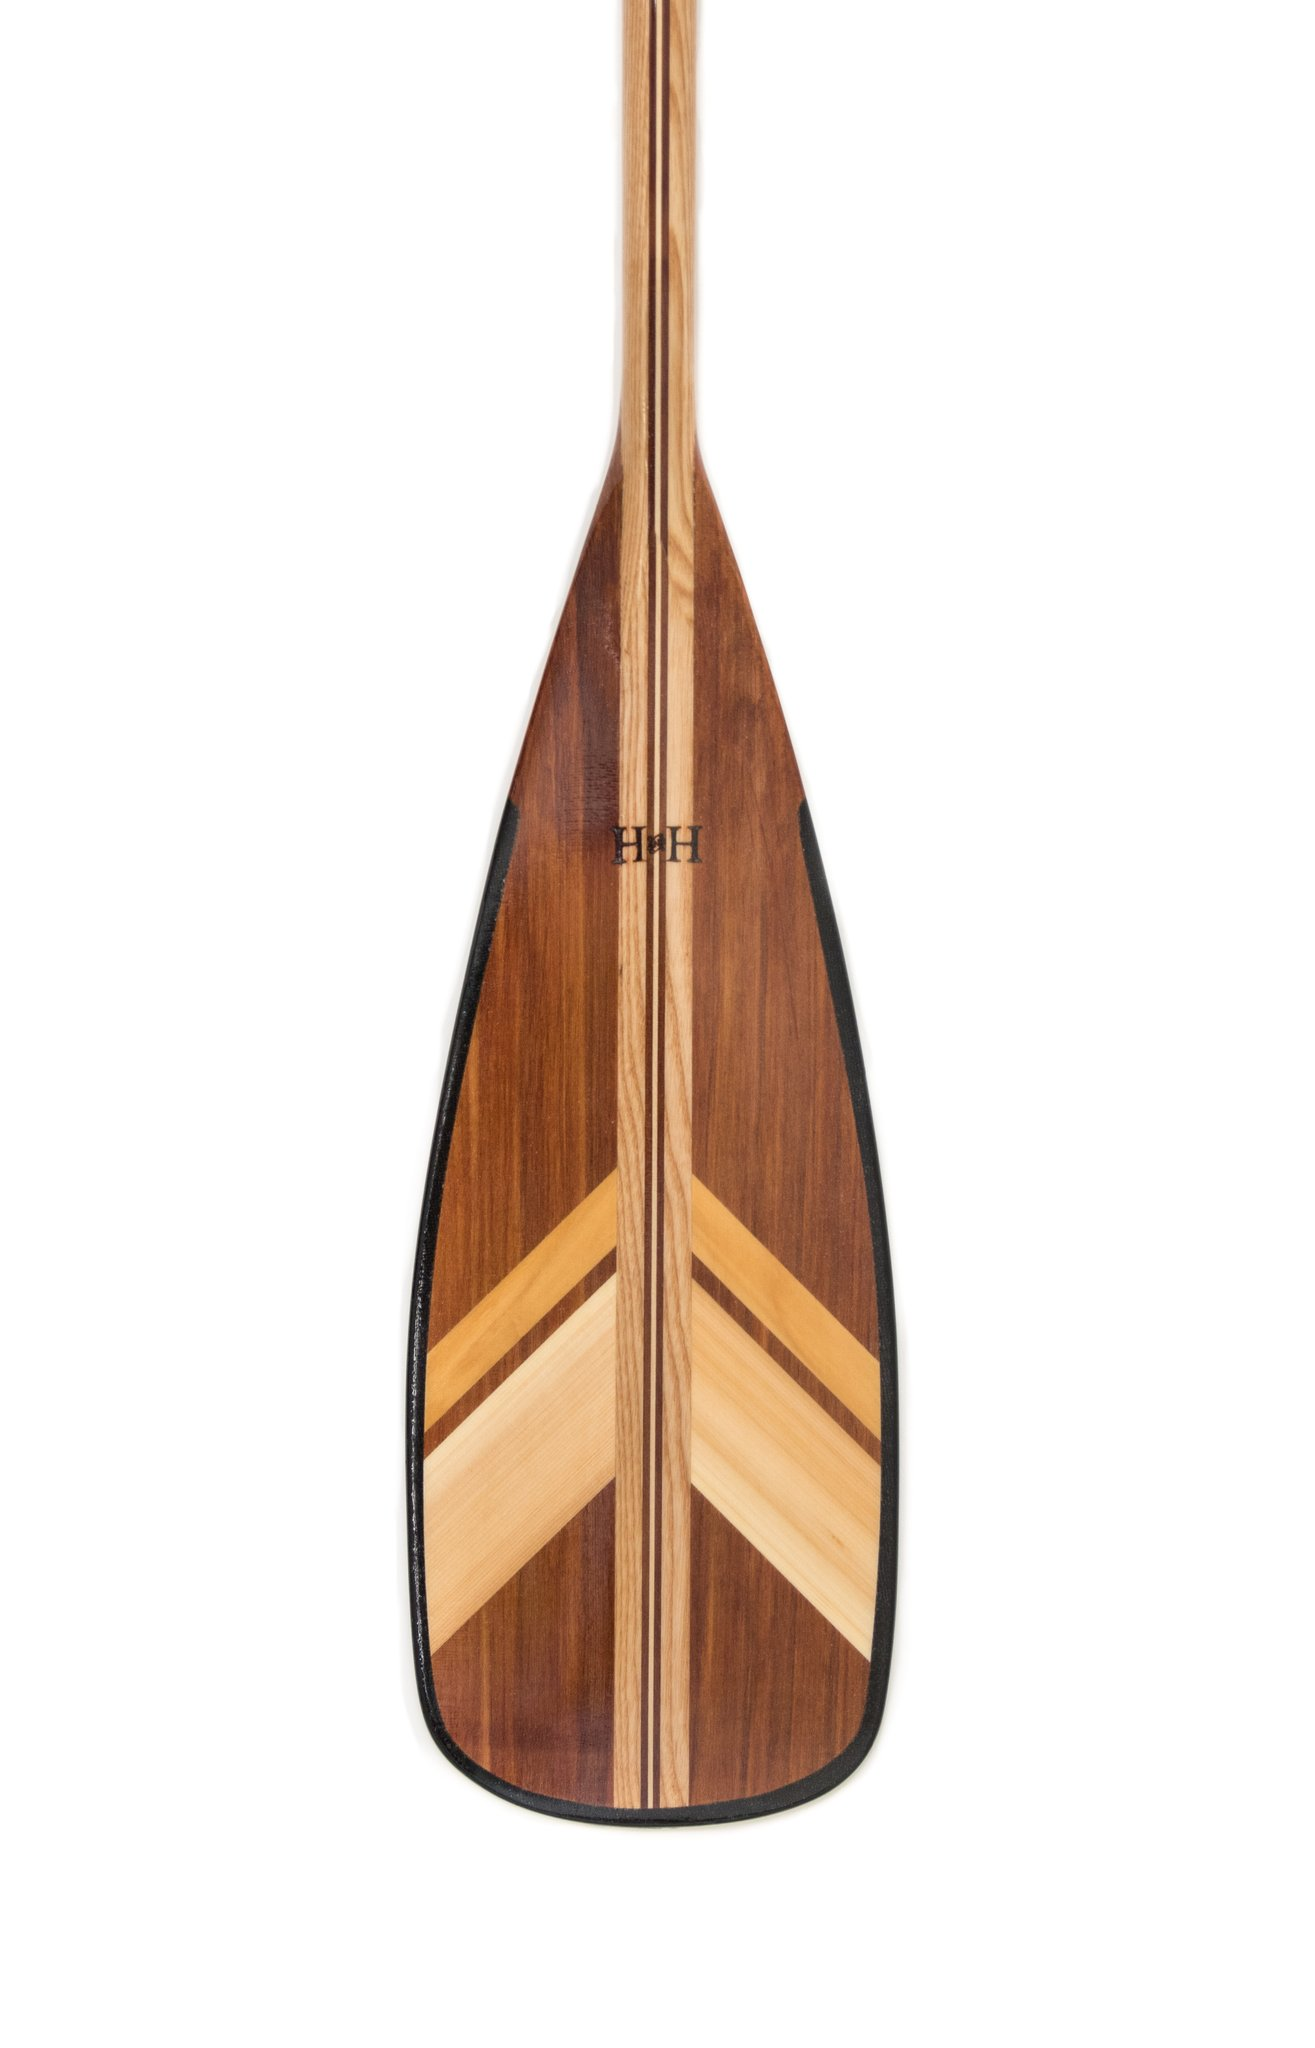 Hartley_Bent_Shaft_Canoe_Paddle_dc85f698-fe2e-403f-b927-7fa2e6c25307_1024x1024@2x.jpg